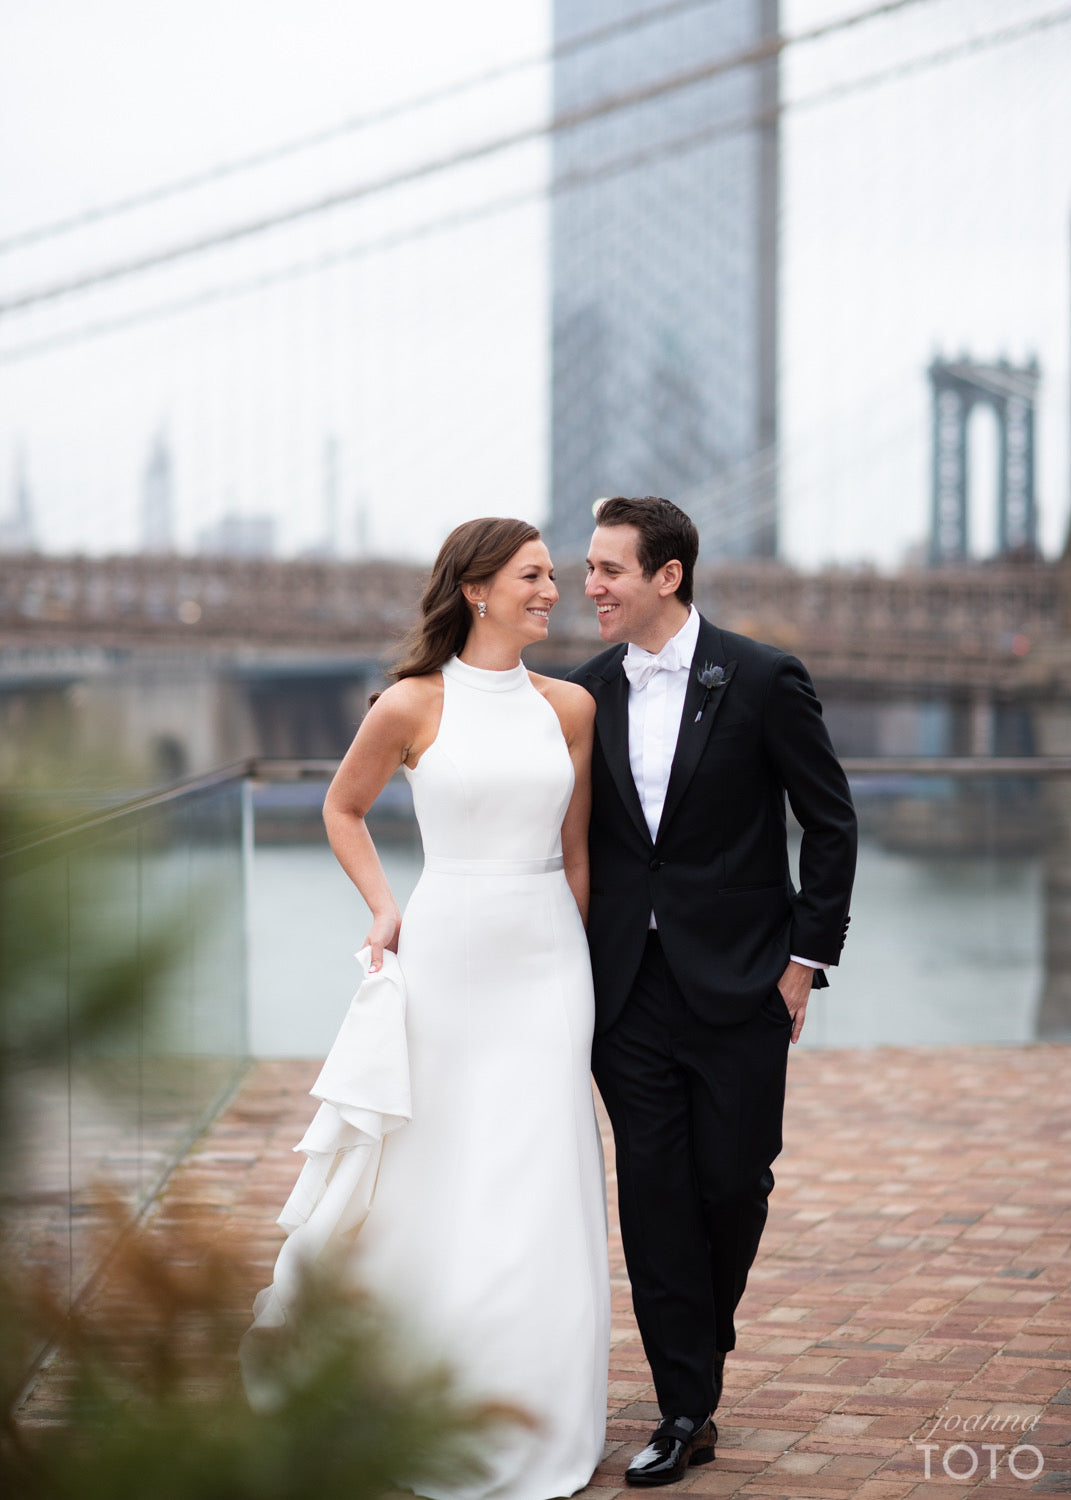 A Fun-Filled NYC Wedding